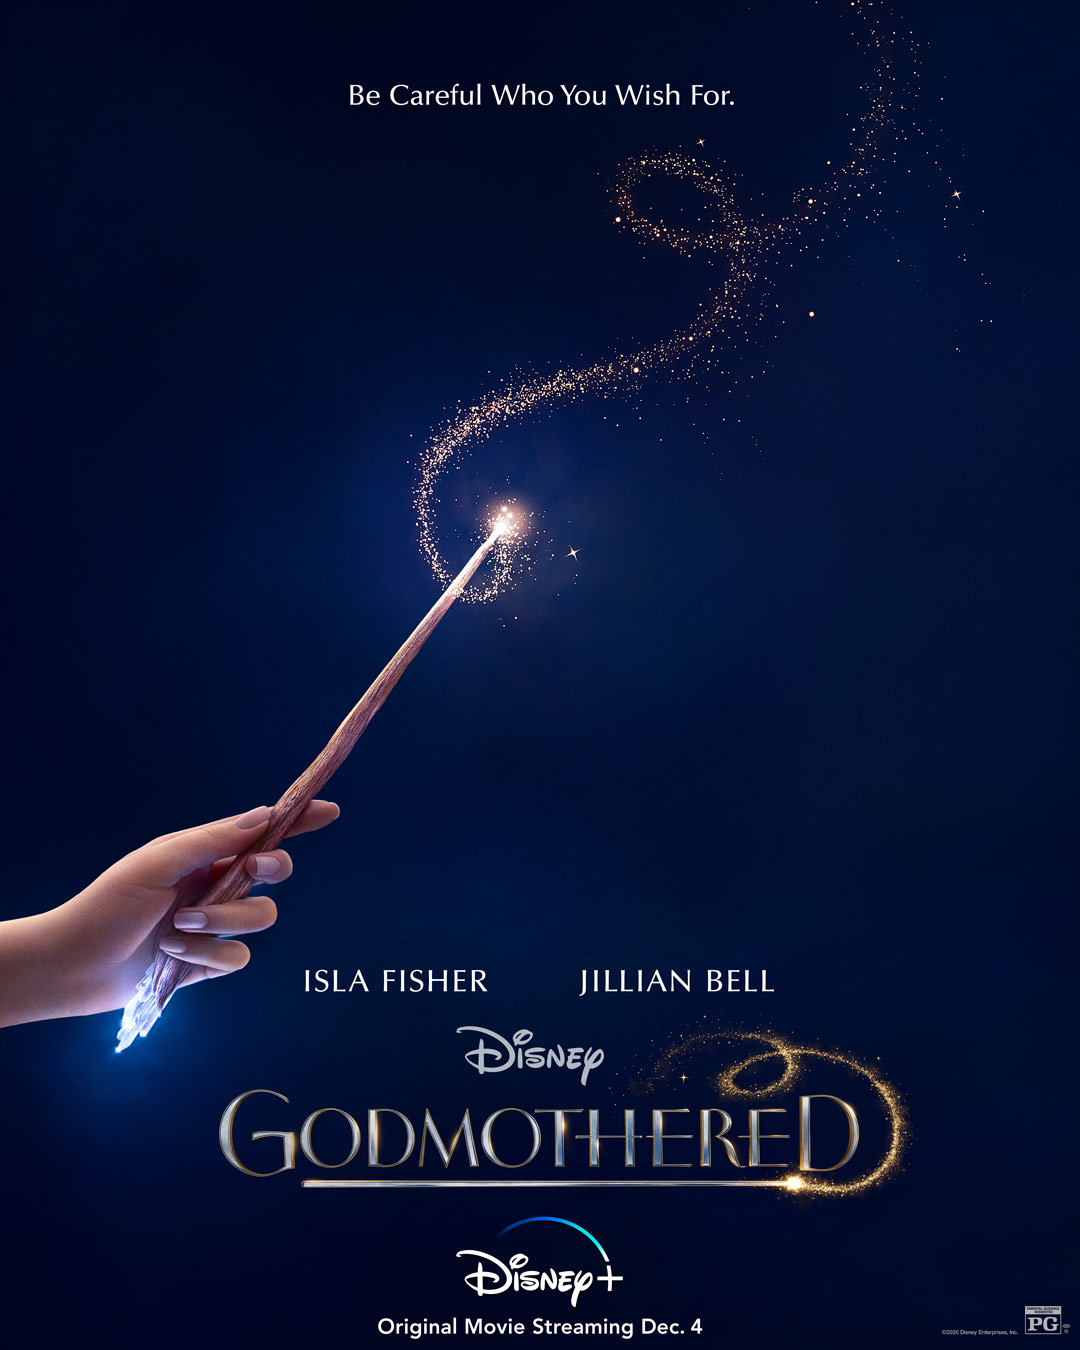 Disney On Twitter Check Out The All New Original Movie Disney S Godmothered Streaming Dec 4 On Disneyplus